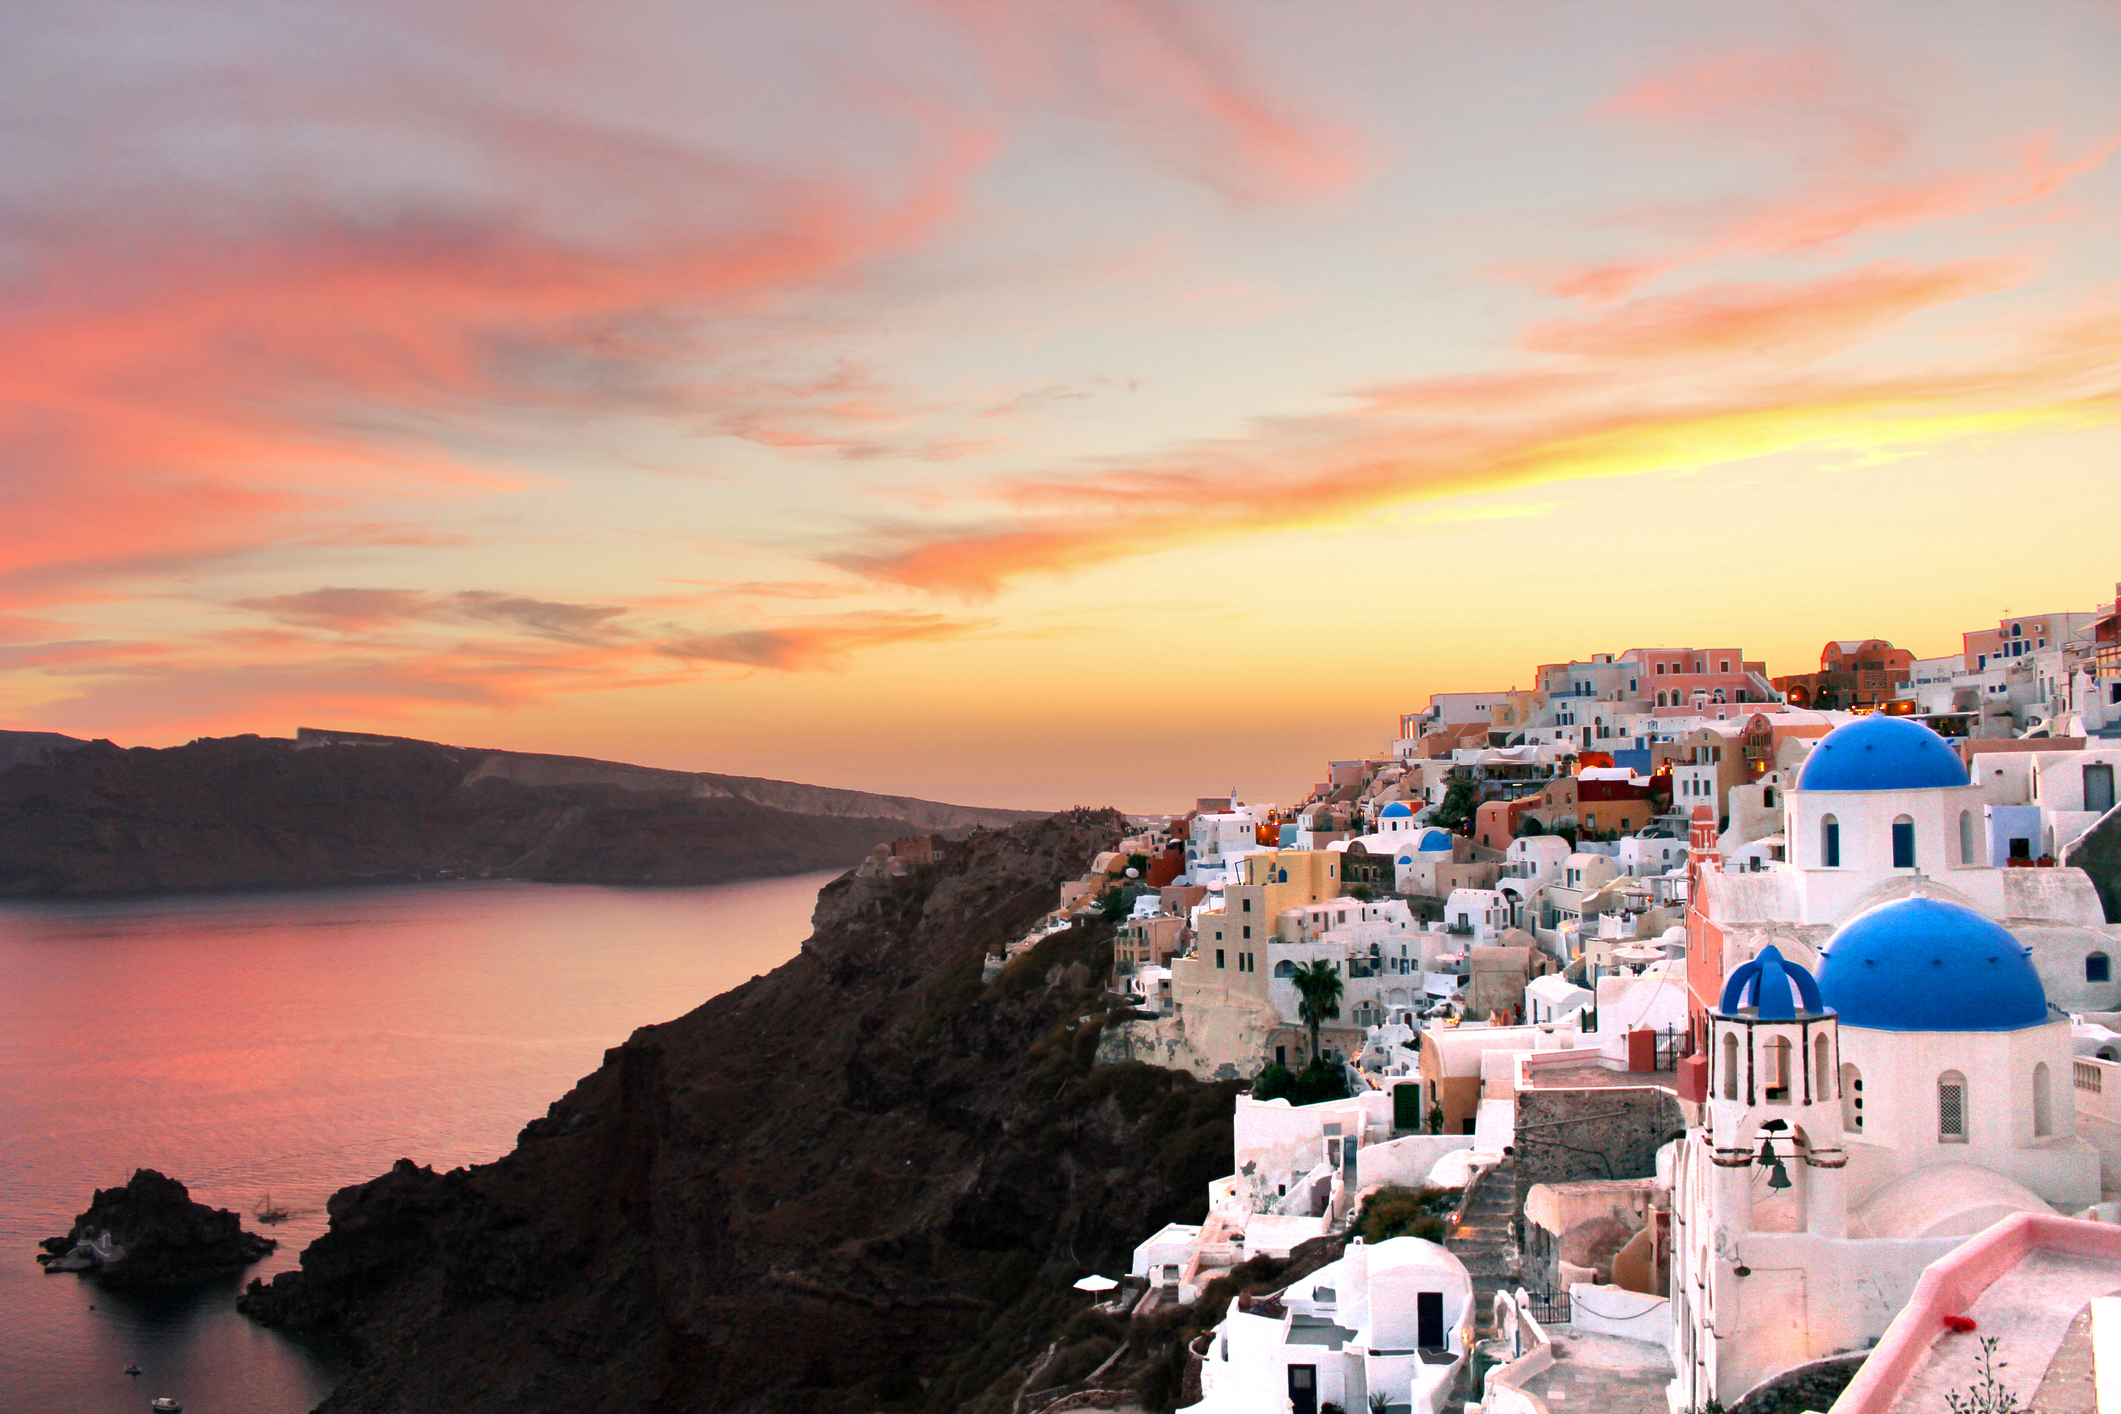 A landscape shot of one of the most famous sightseeing spots in Greece, right after the sunset. You can see the traditional whitewashed houses and the beautiful colors of the sunset at this special location.